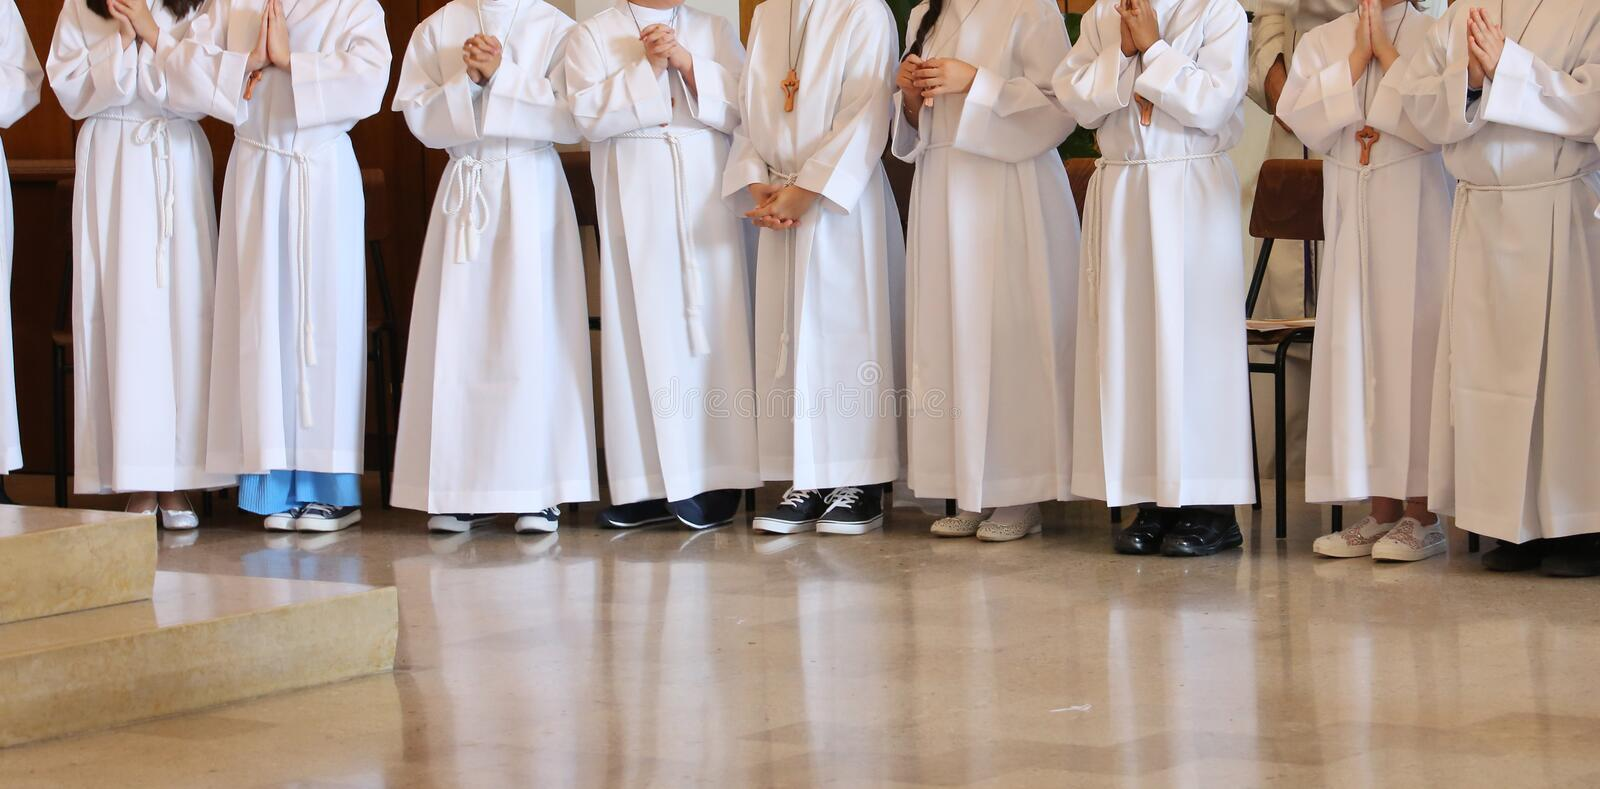 Many young people at first communion royalty free stock image